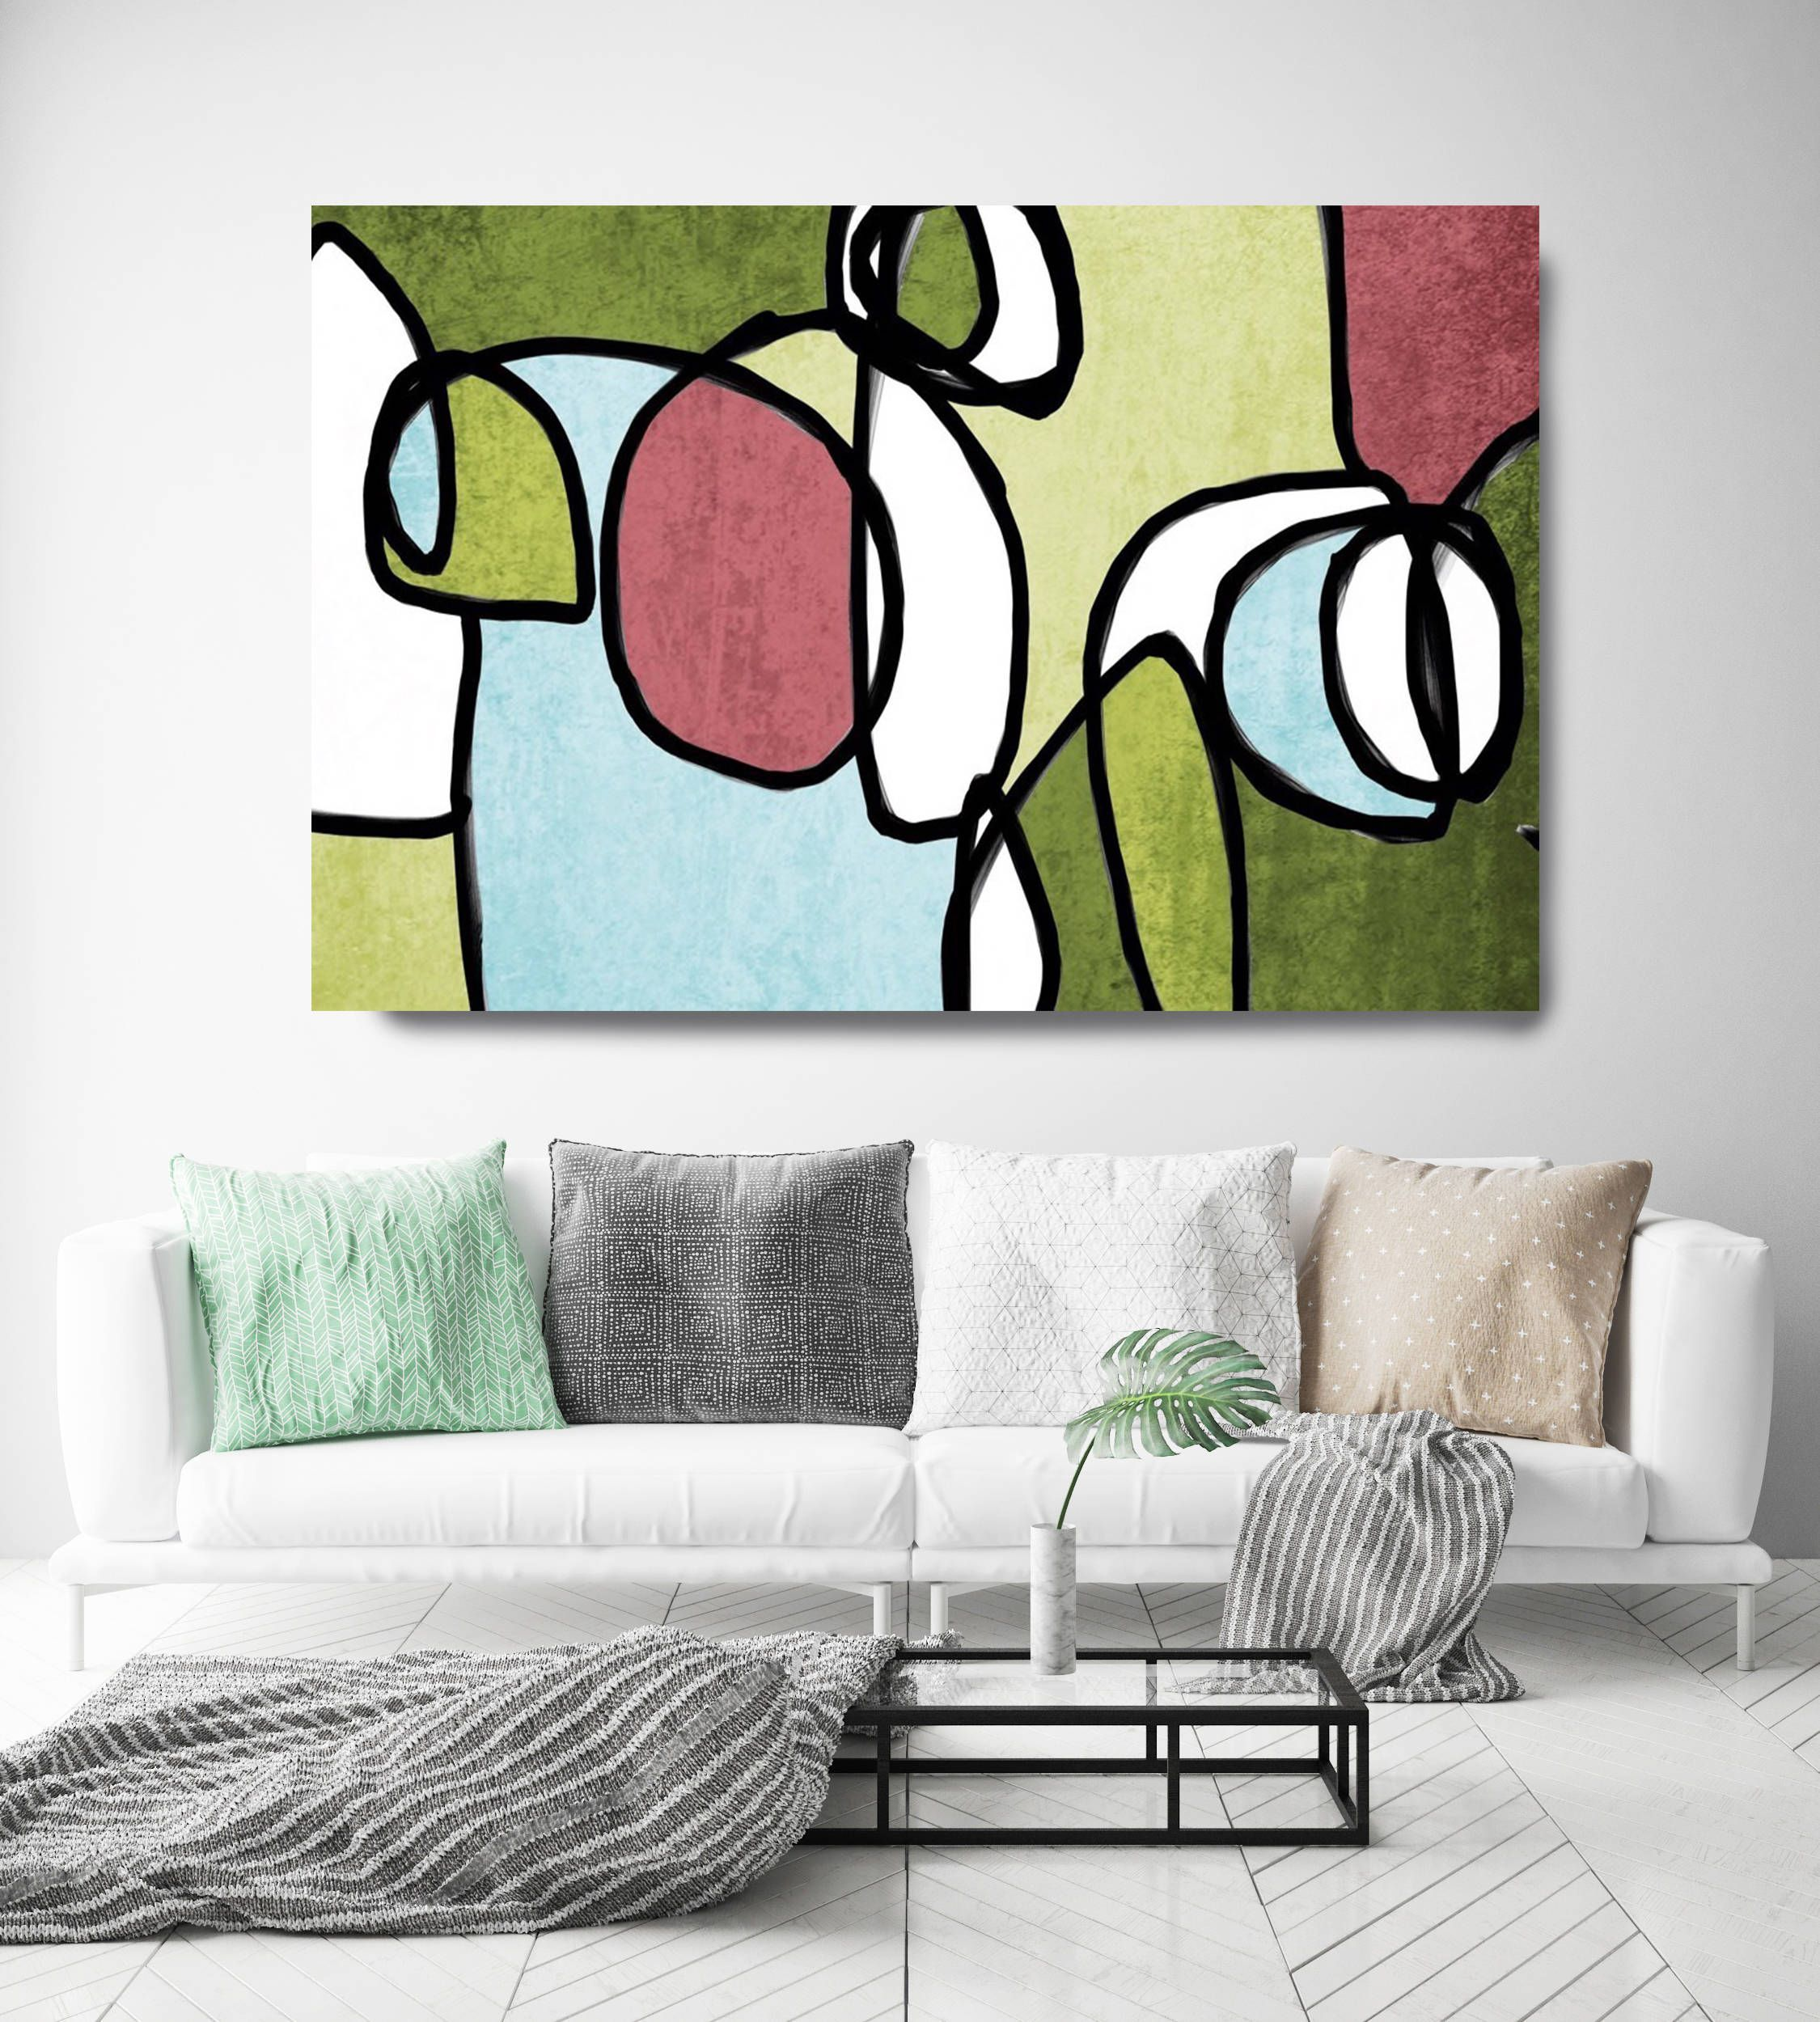 Mitte Jahrhundert Modernes Haus Interieur Vibrant Colorful Abstract  Midcentury Modern Green Pink Canvas